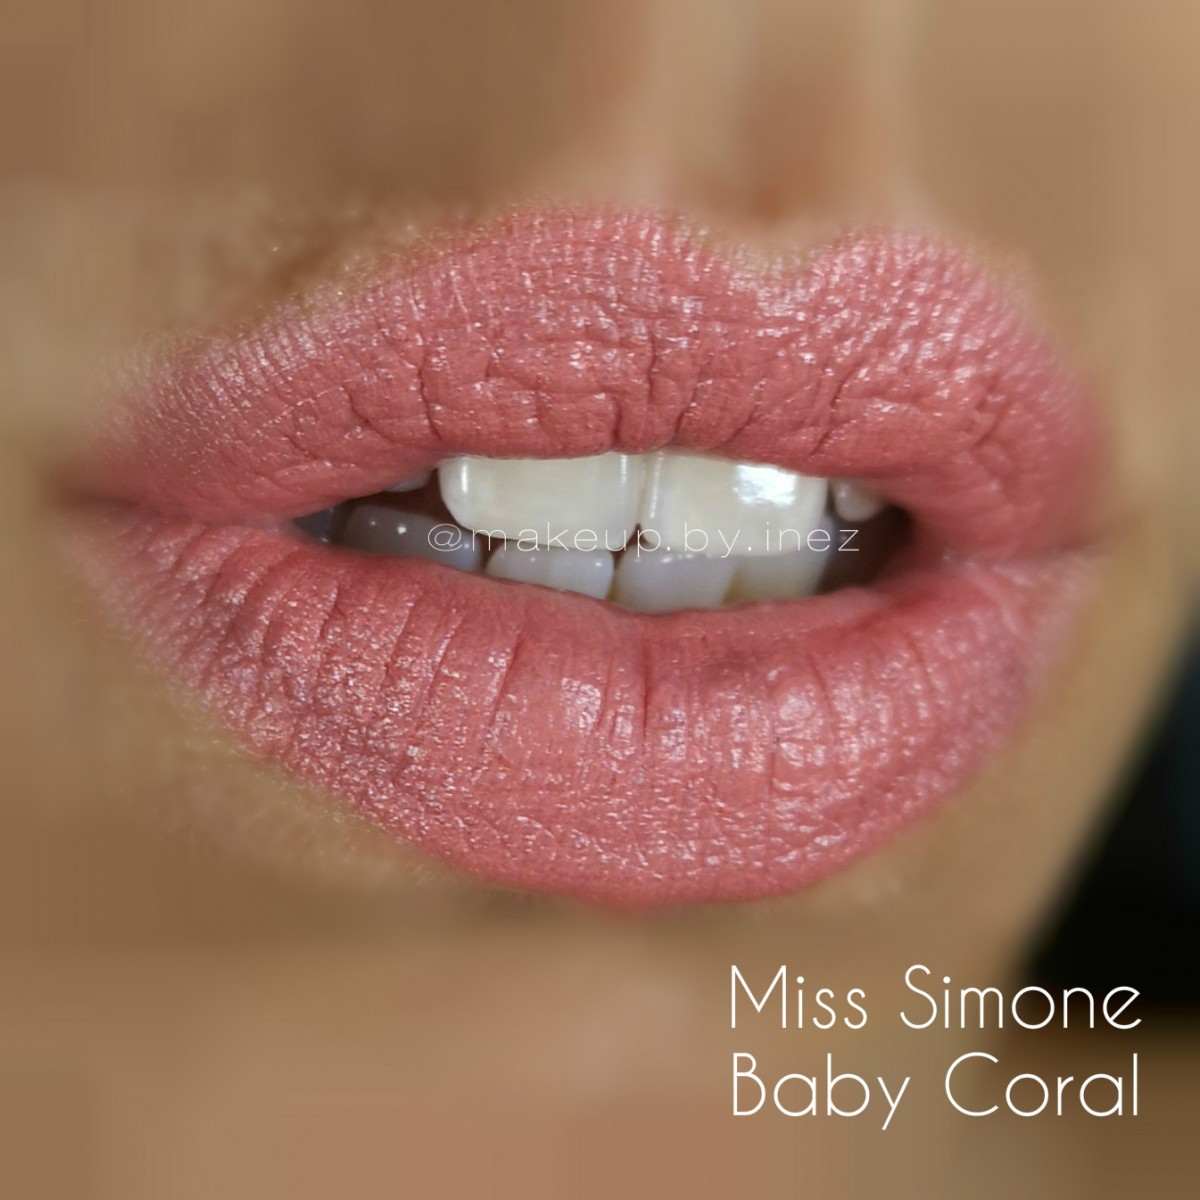 Miss Simone Baby Coral Whipped Matte